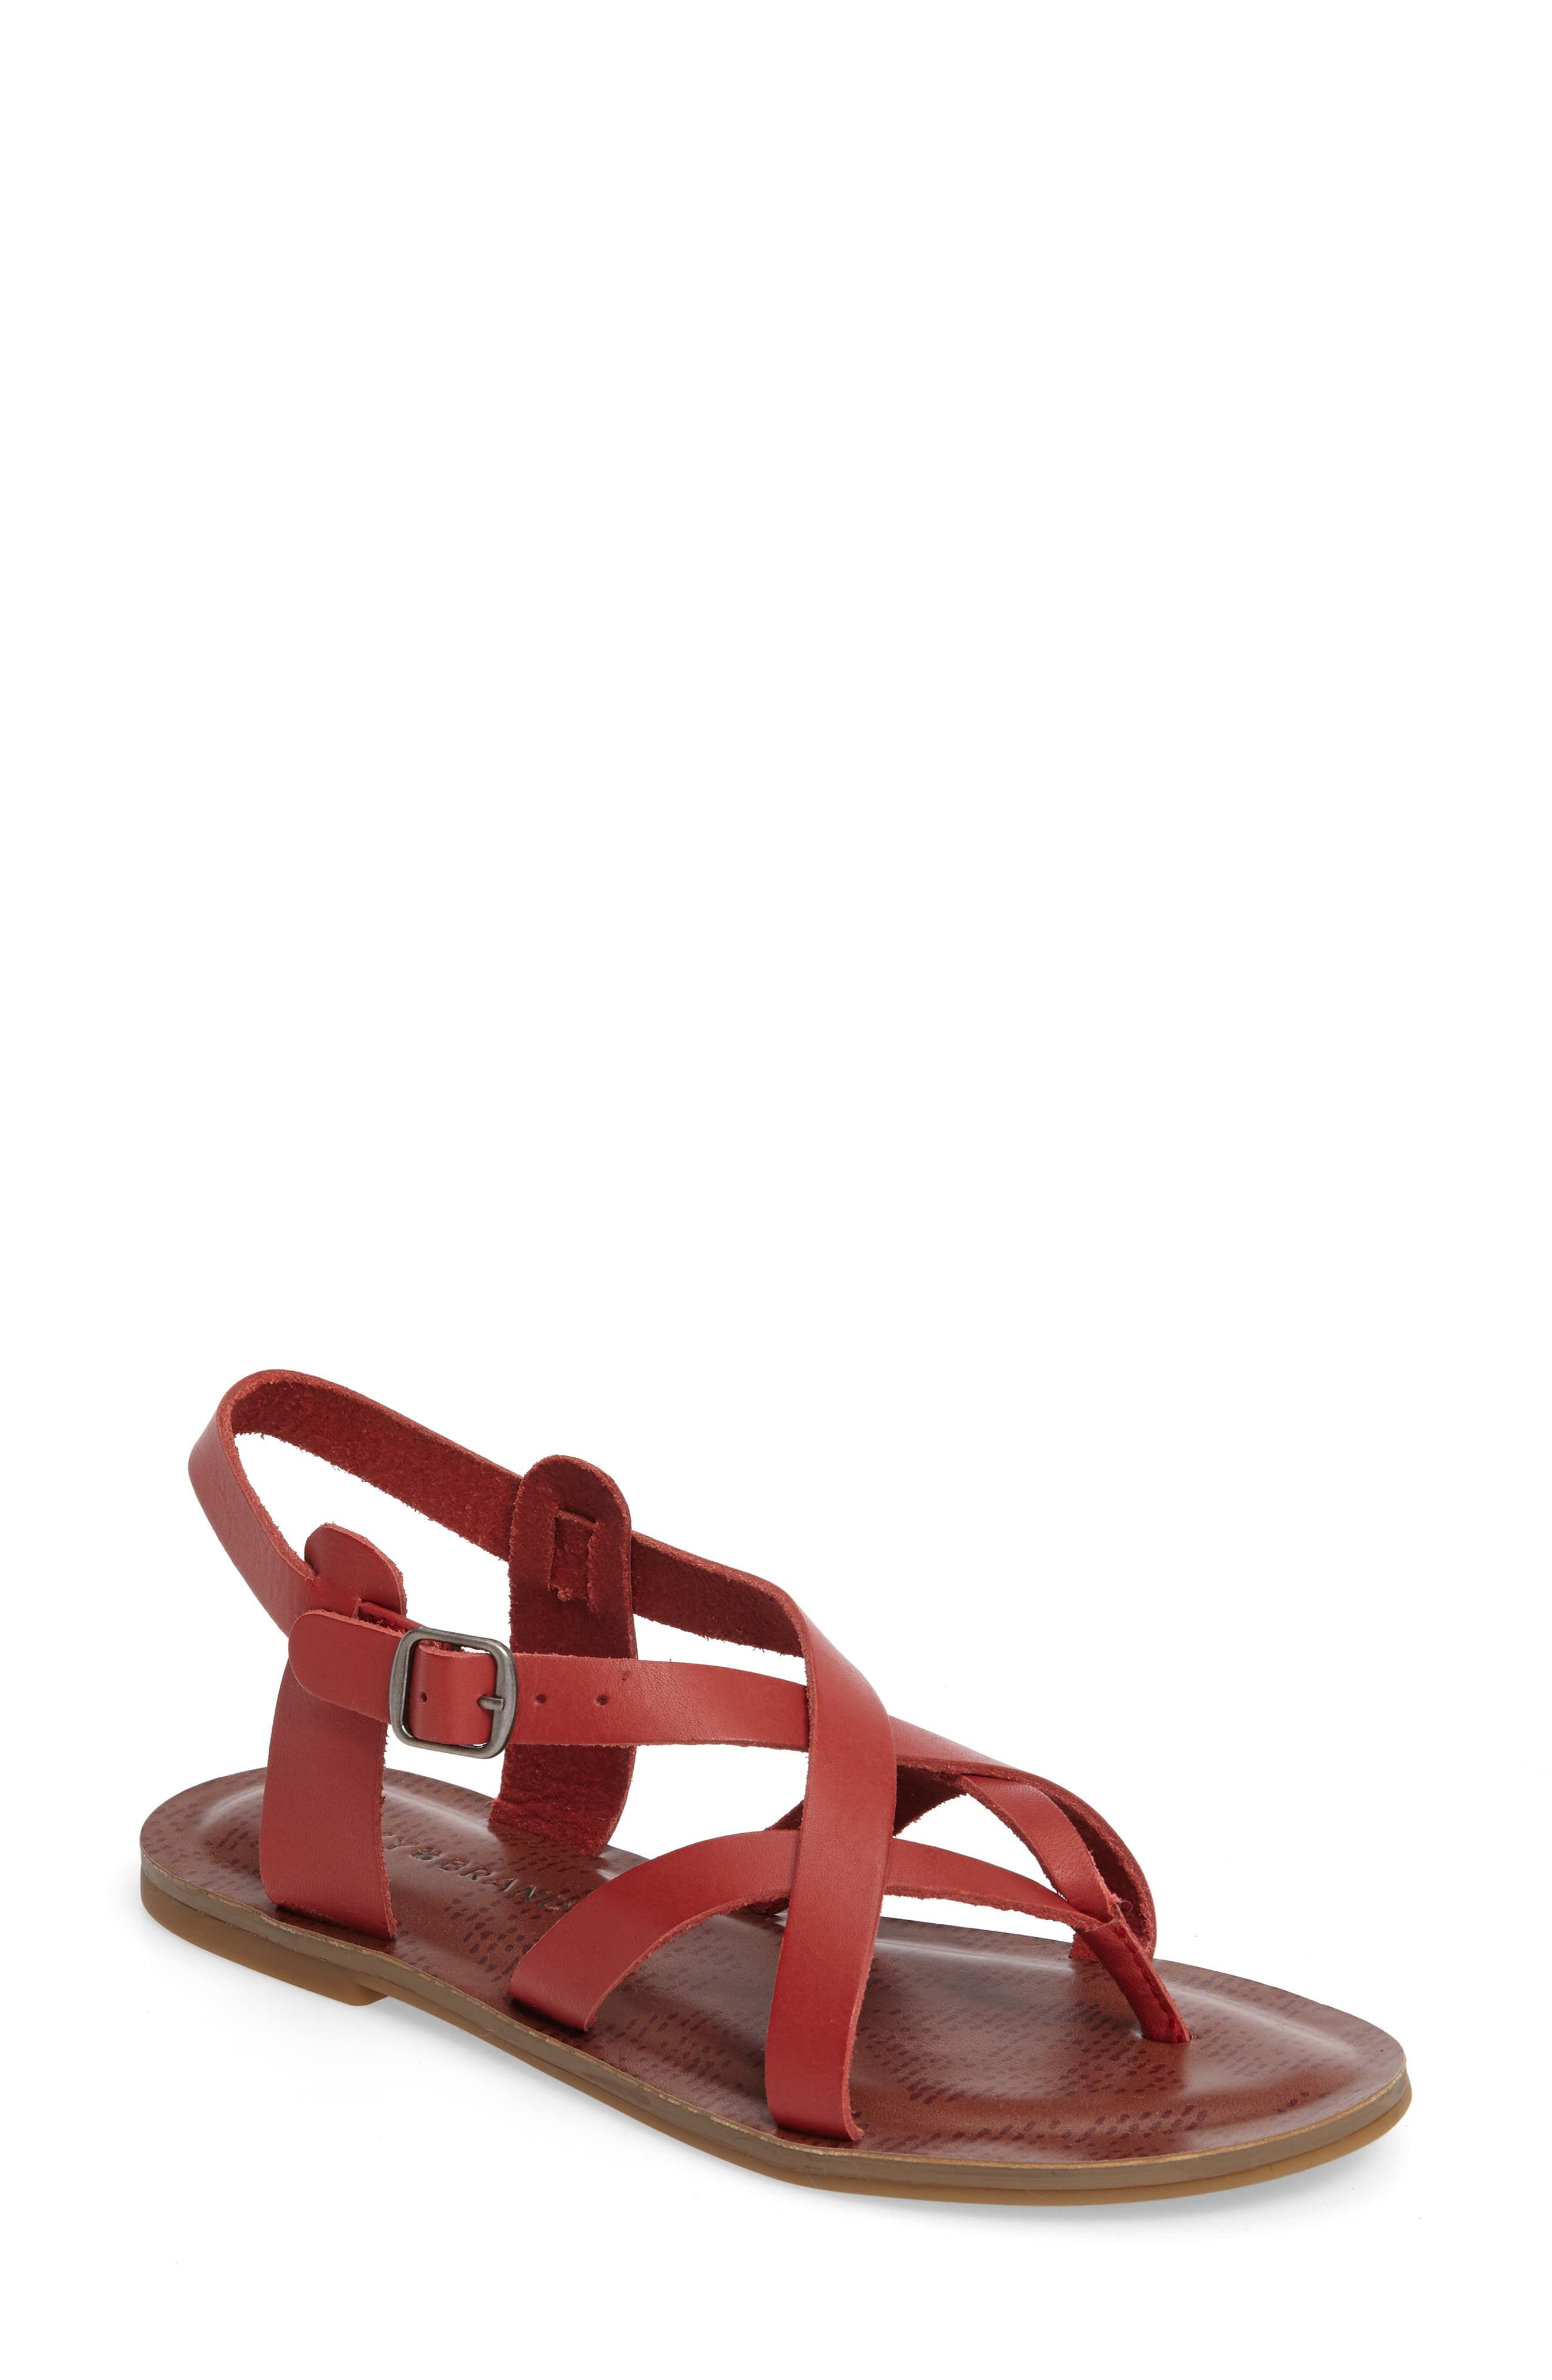 Alternate Image 1 Selected - Lucky Brand Adinis Flat Sandal (Women)